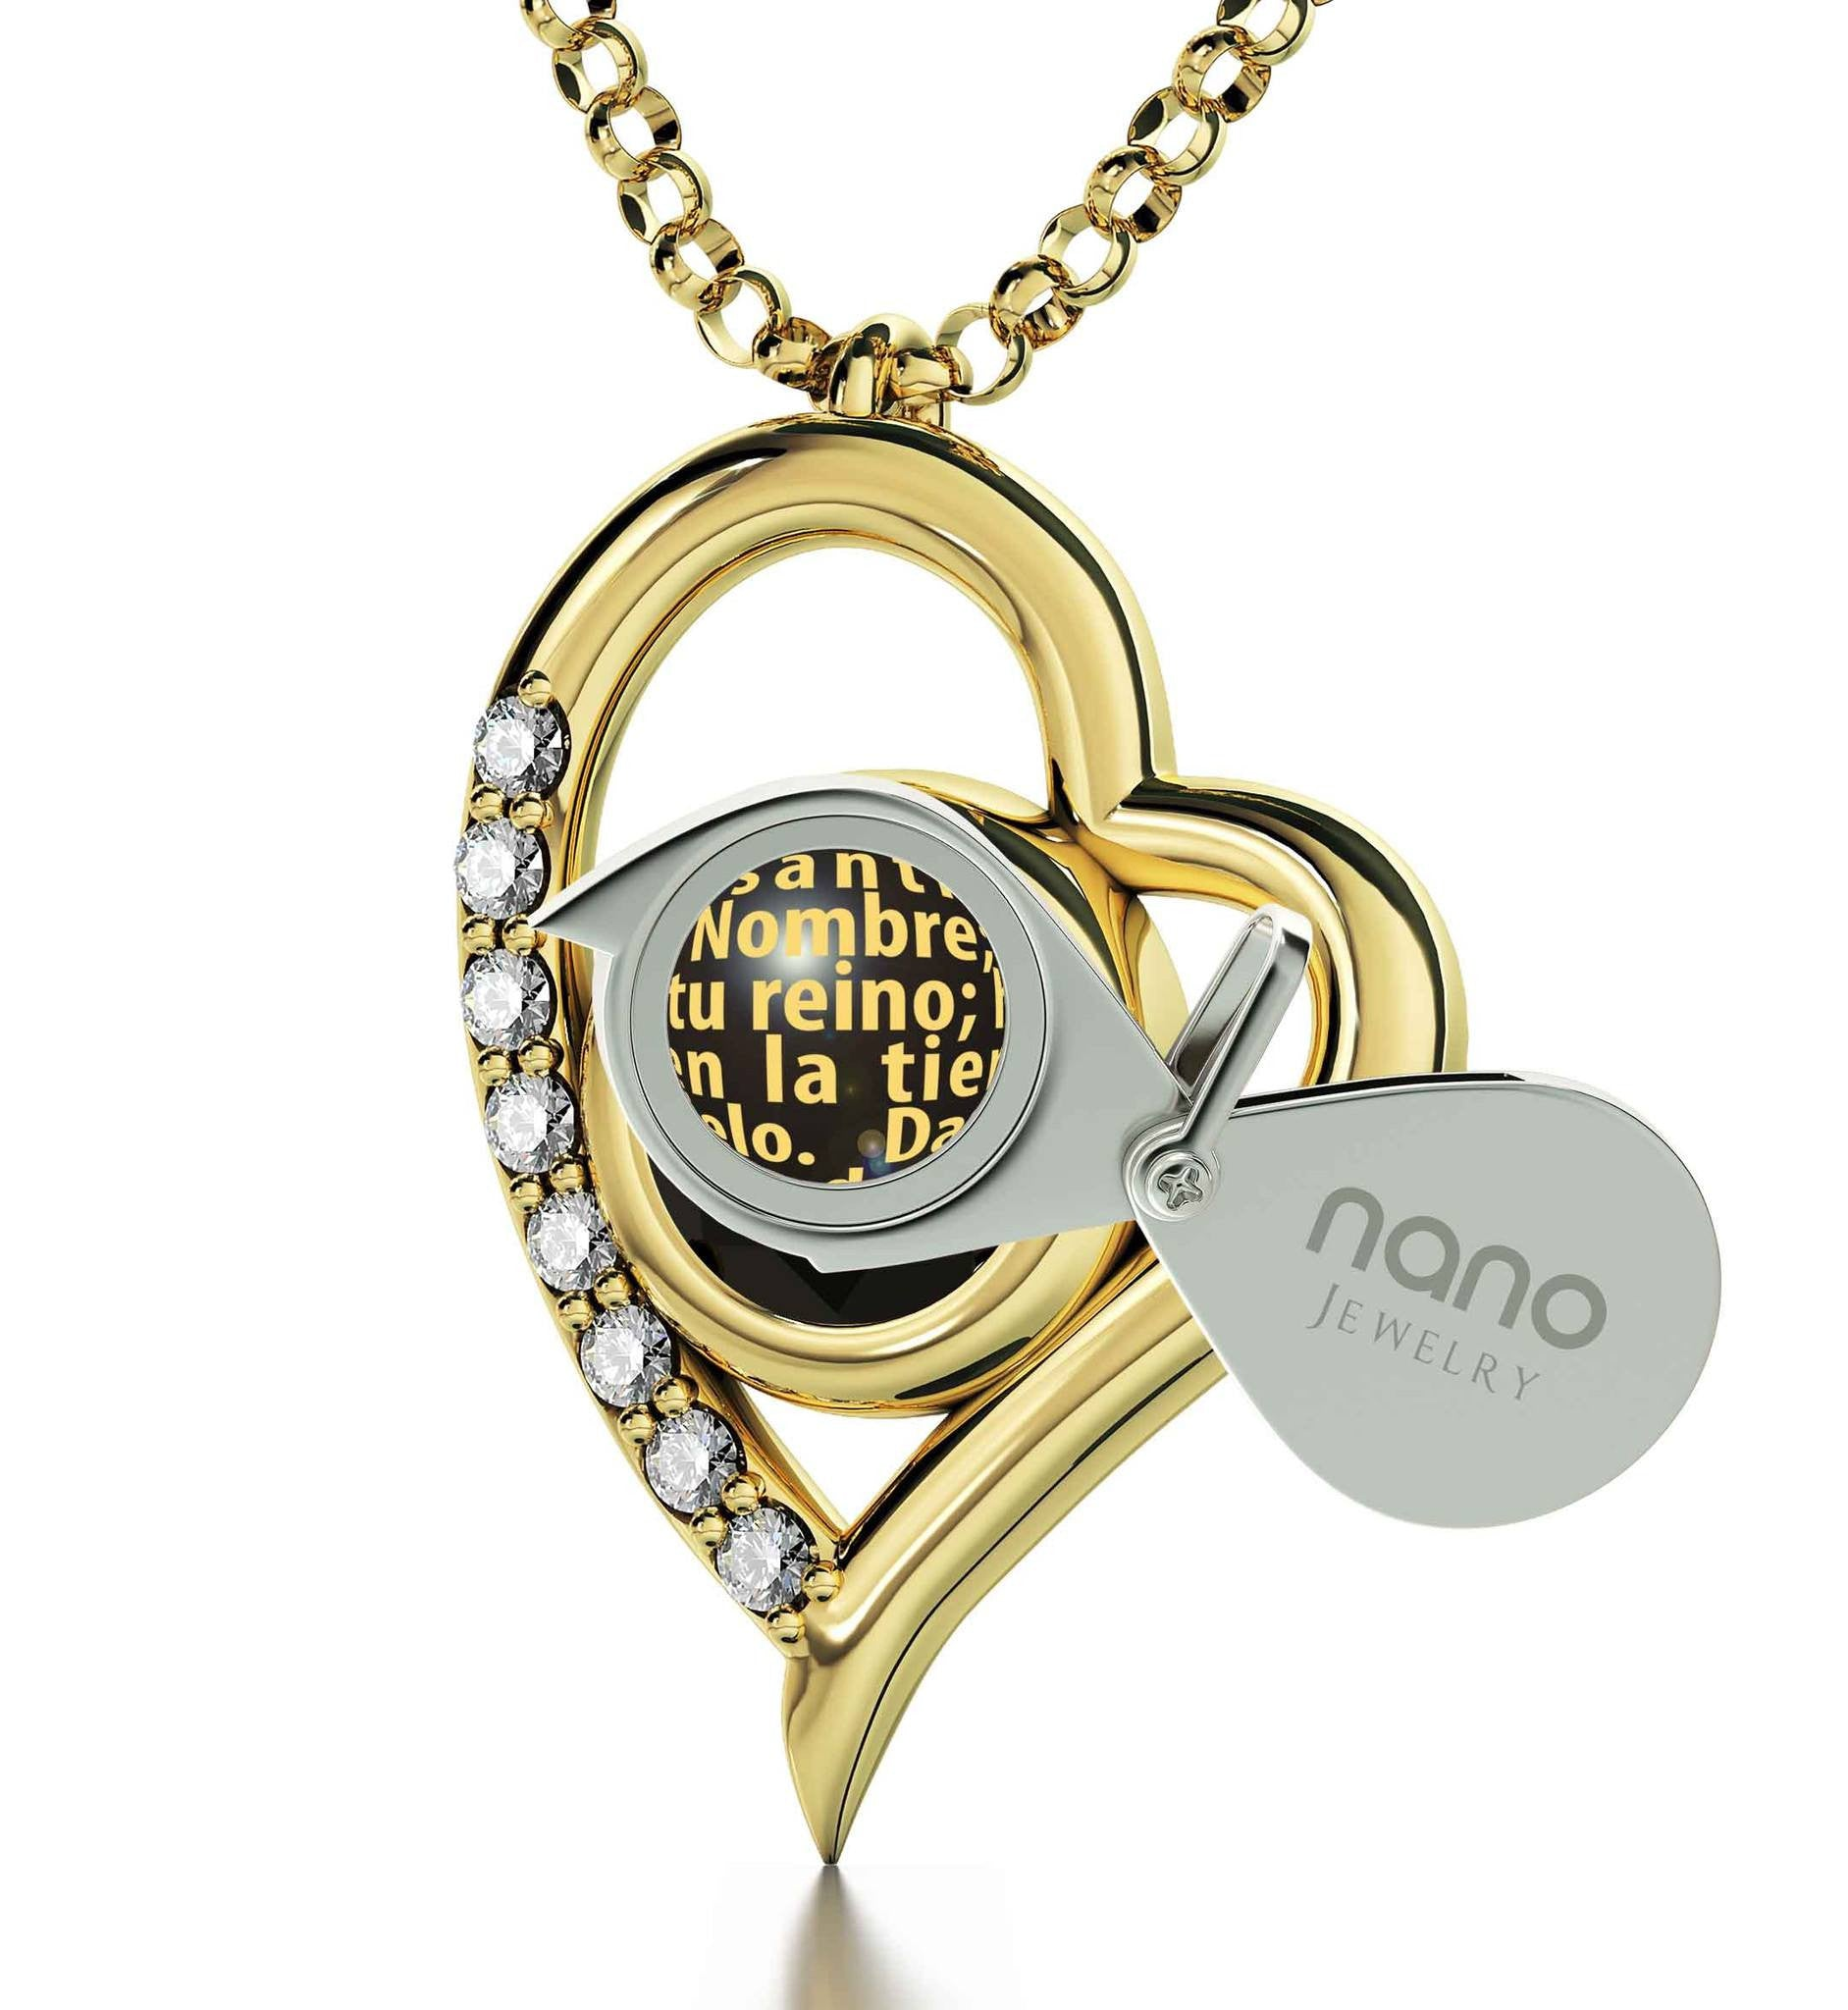 """Gold Filled Chain with Lord's Prayer Pendant, What to Get Girlfriend for Christmas, Top Gift Ideas for Women"""